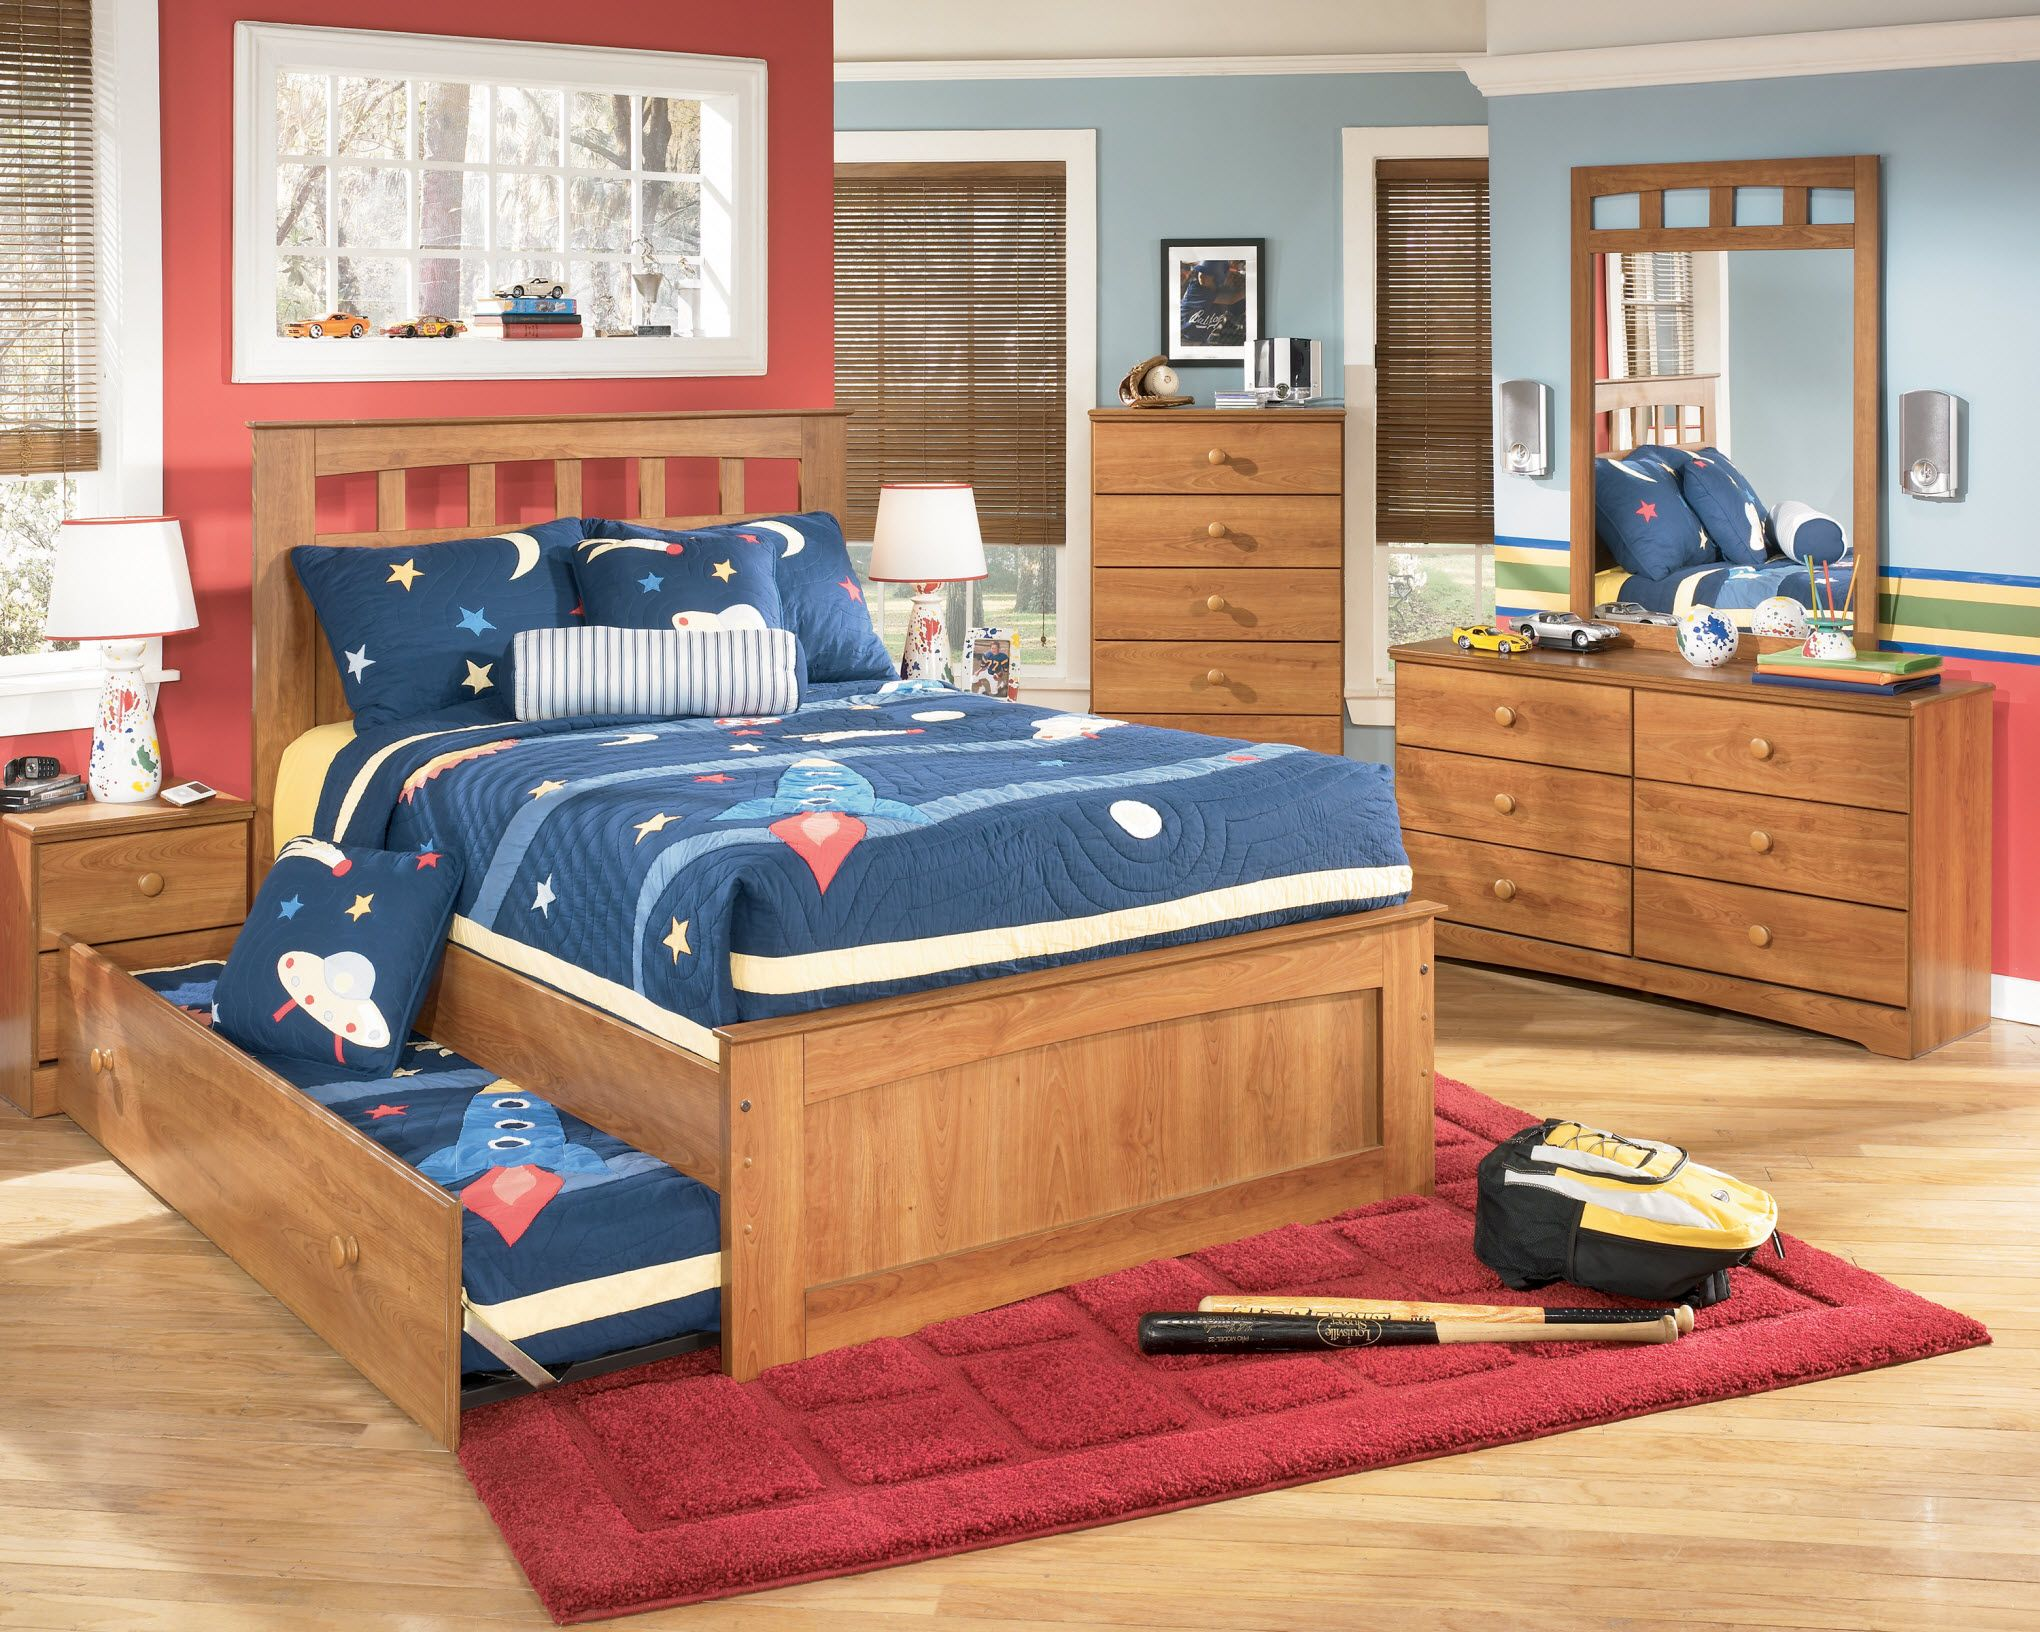 Bedroom Sets Boys cool teenage boys bedroom furniture sets | bedroom | pinterest